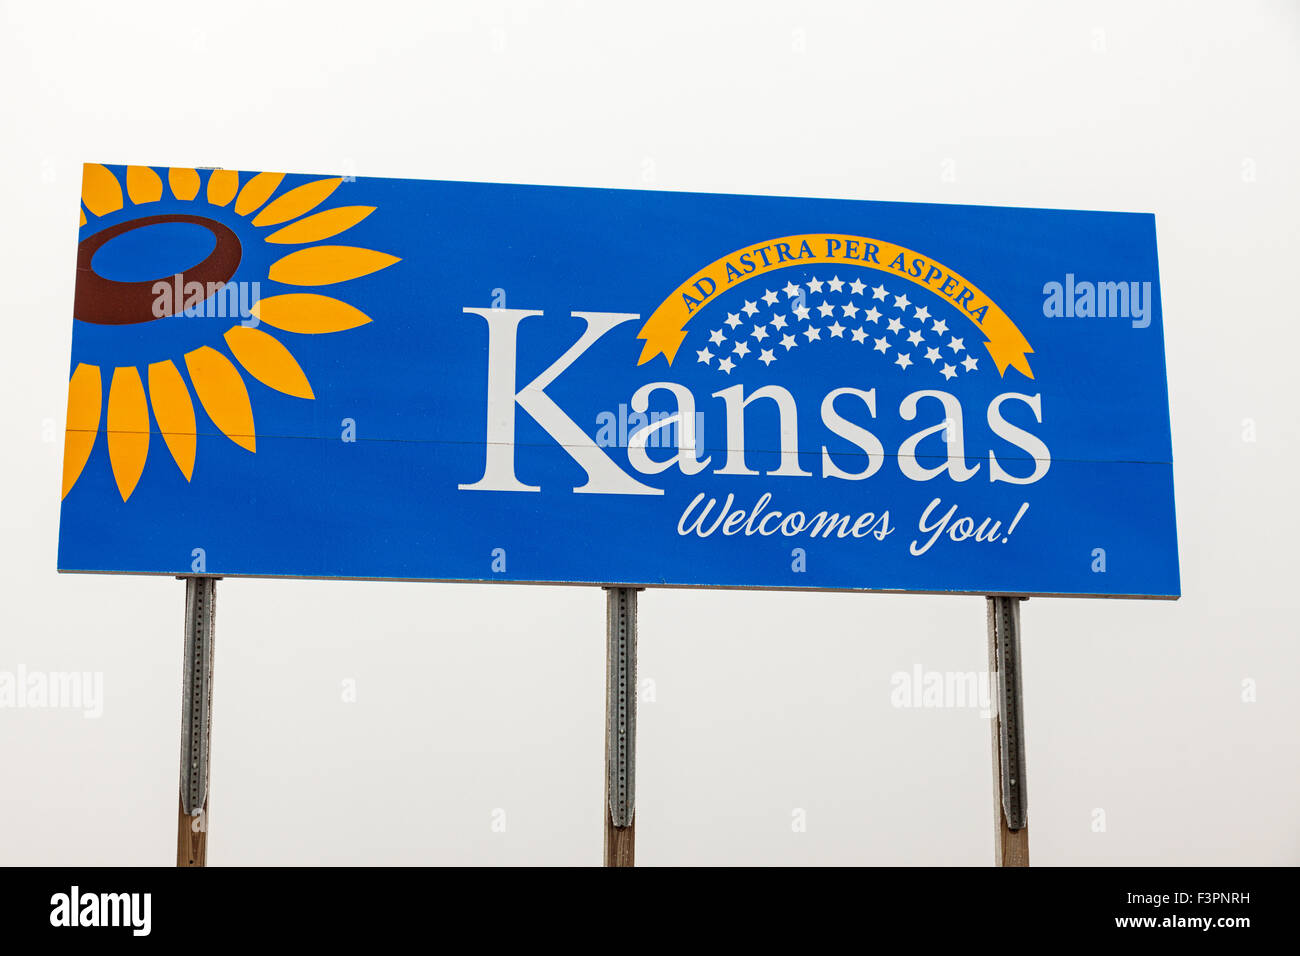 Kanas Welcome Sign - seen during foggy day. - Stock Image